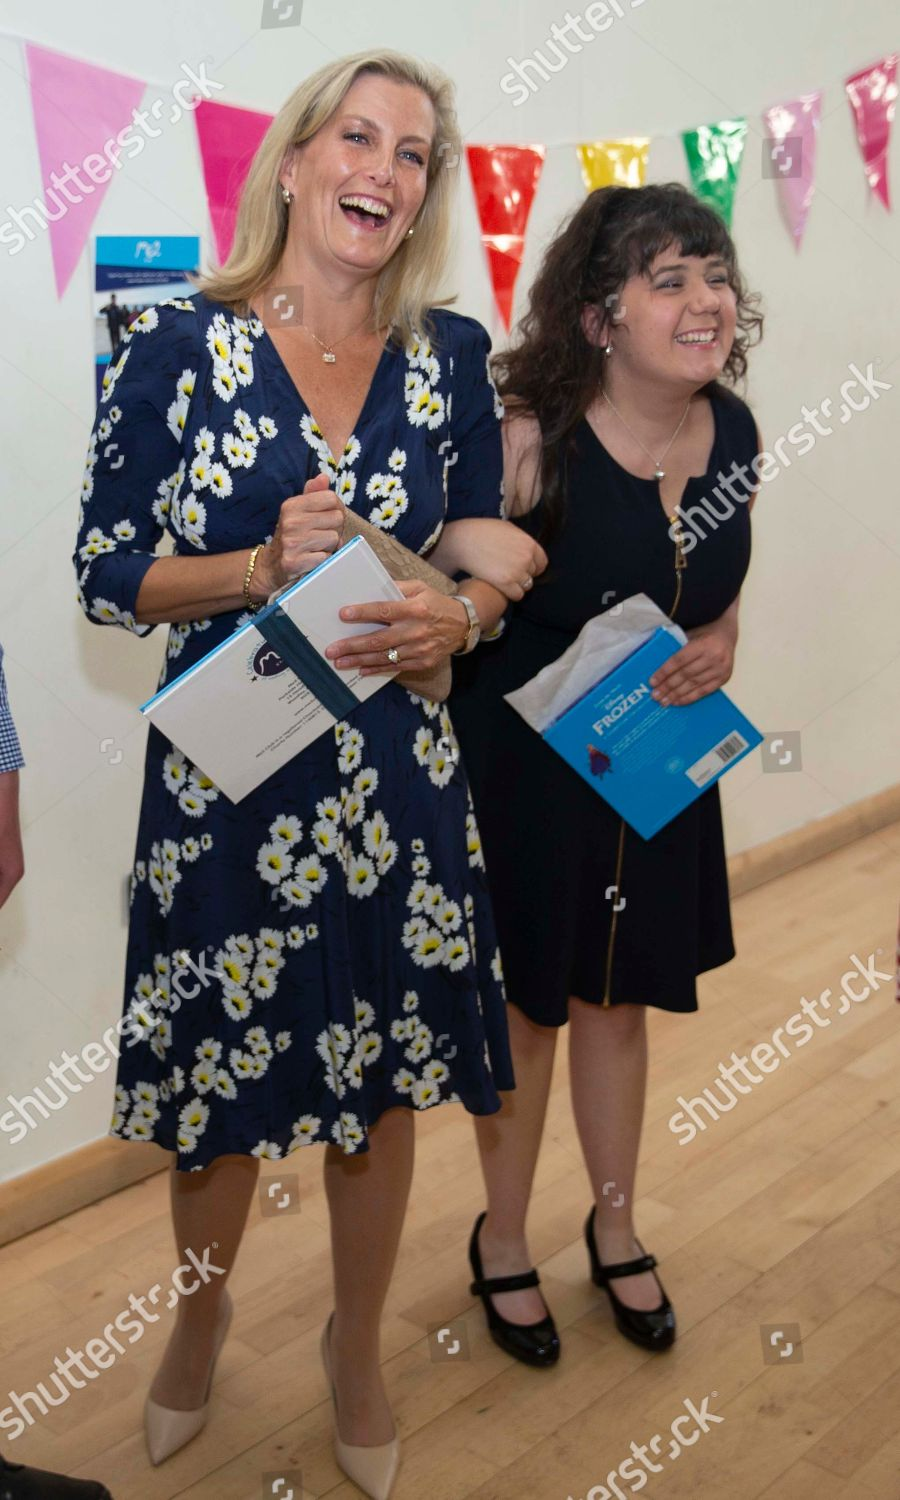 sophie-countess-of-wessex-visits-the-me2-club-tea-party-woodley-uk-shutterstock-editorial-9885213ab.jpg